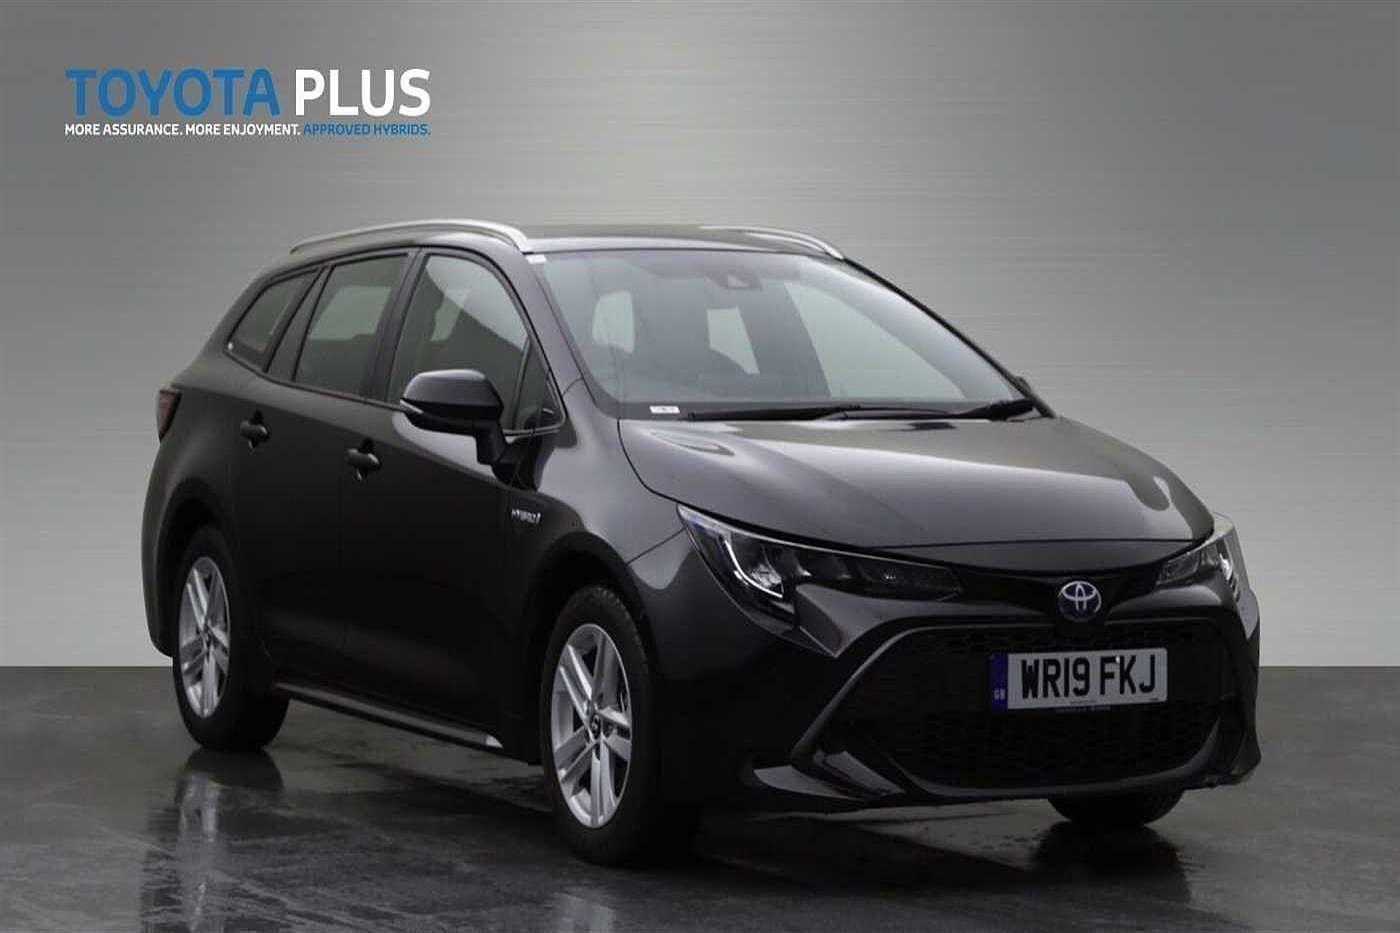 Toyota Corolla 1.8 VVT-i Hybrid Icon Tech 5dr CVT Estate Hybrid Black